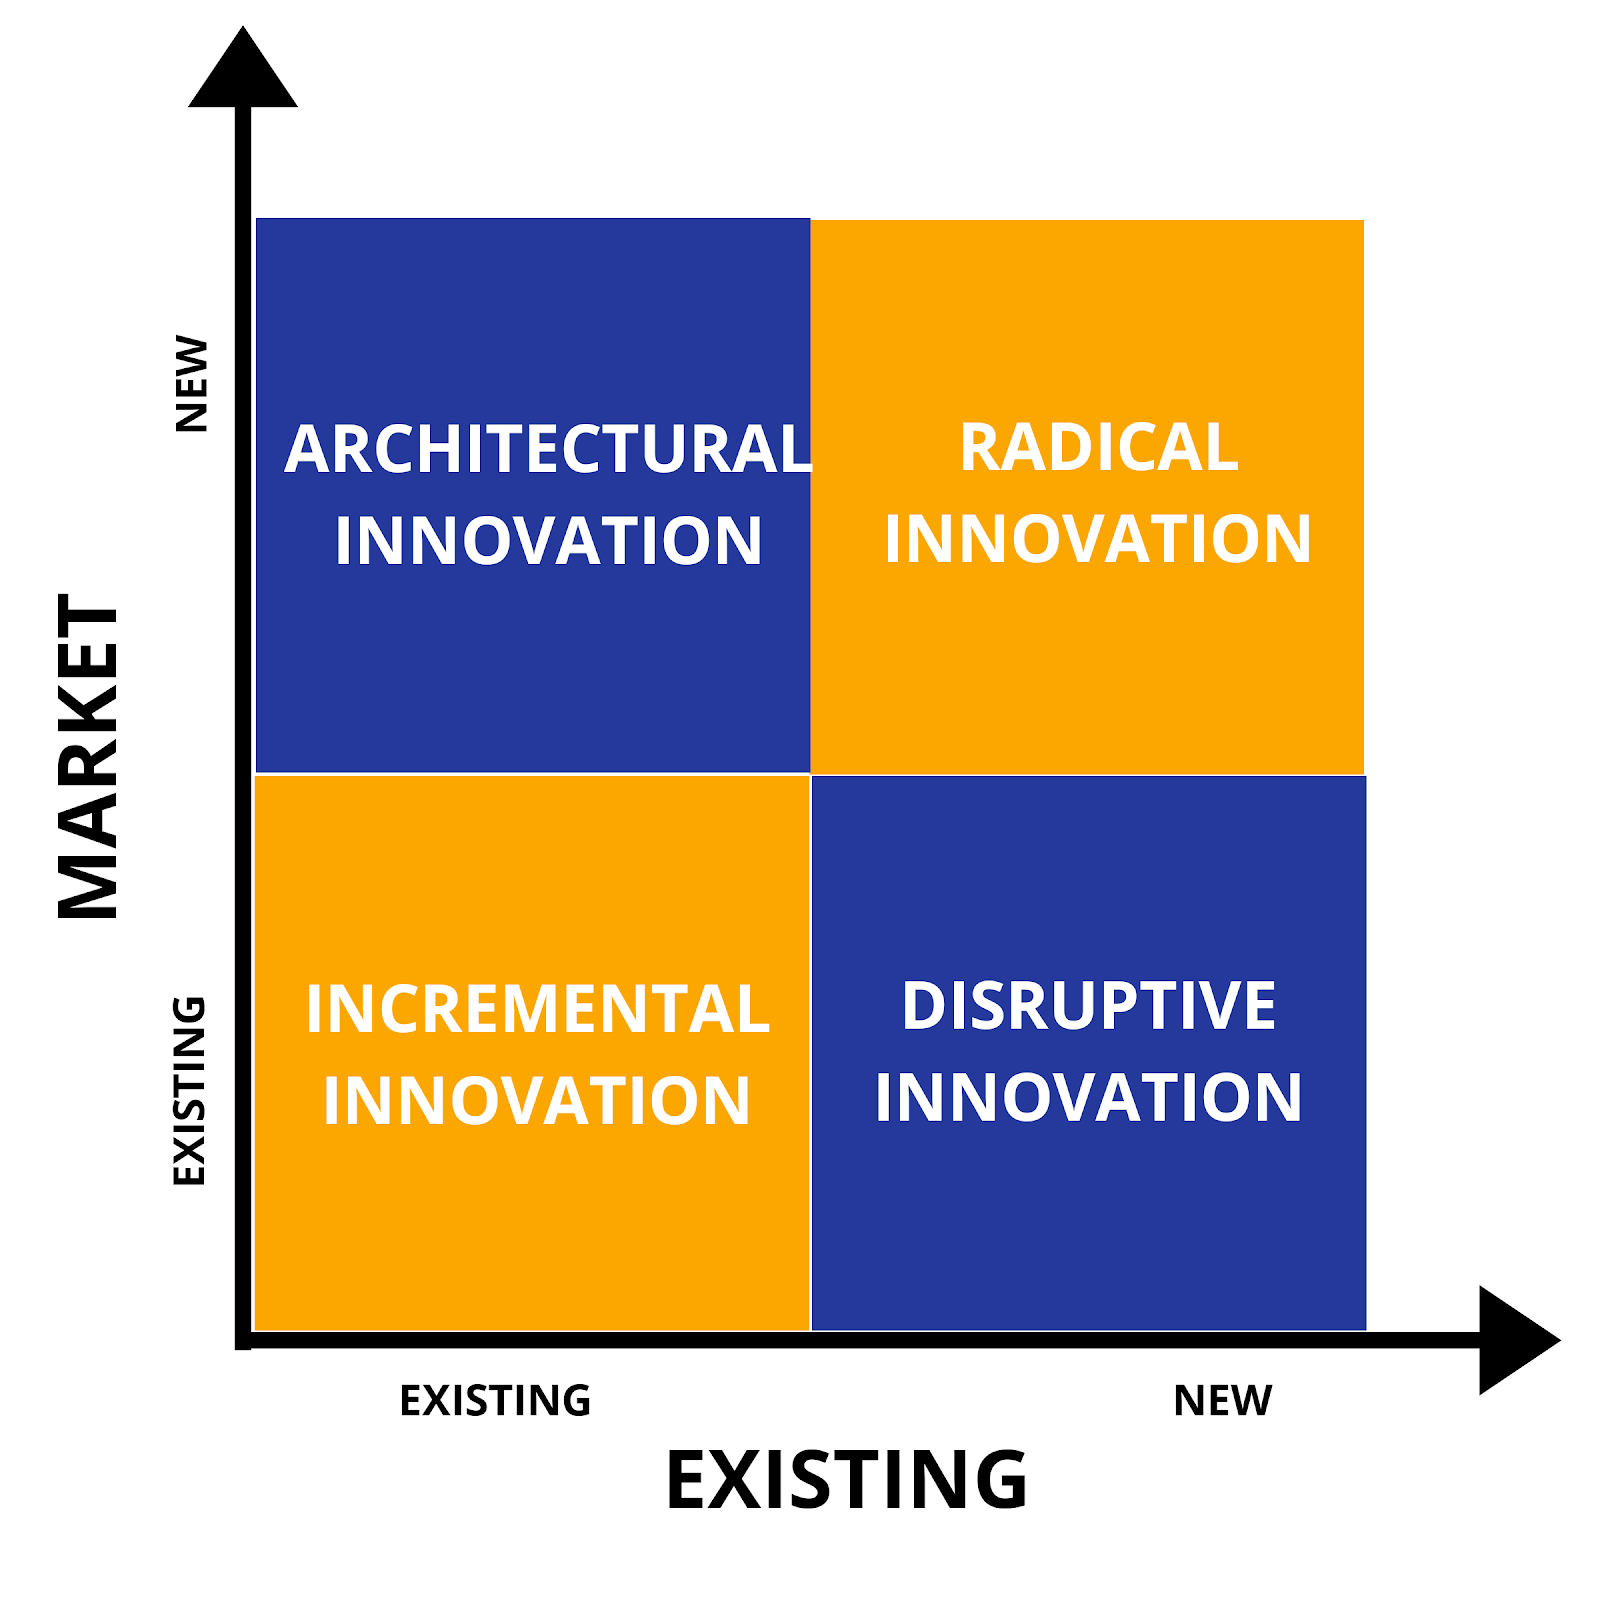 Other Innovation Types